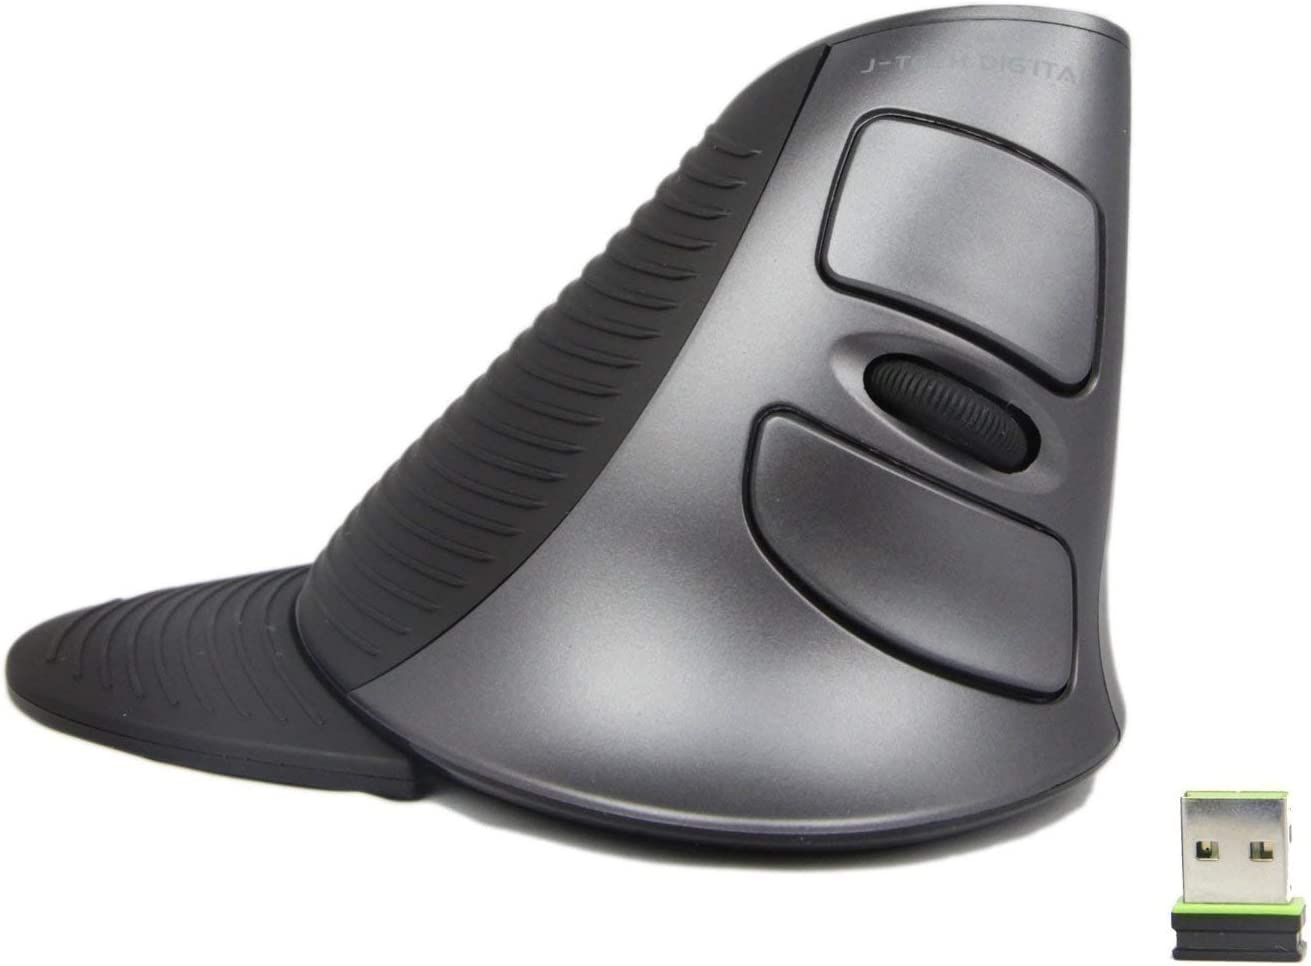 J-Tech Digital Scroll Endurance Wireless Mouse Ergonomic Vertical USB Mouse with Adjustable Sensitivity (600/1000/1600 DPI), Removable Palm Rest & Thumb Buttons - Reduces Hand/Wrist Pain